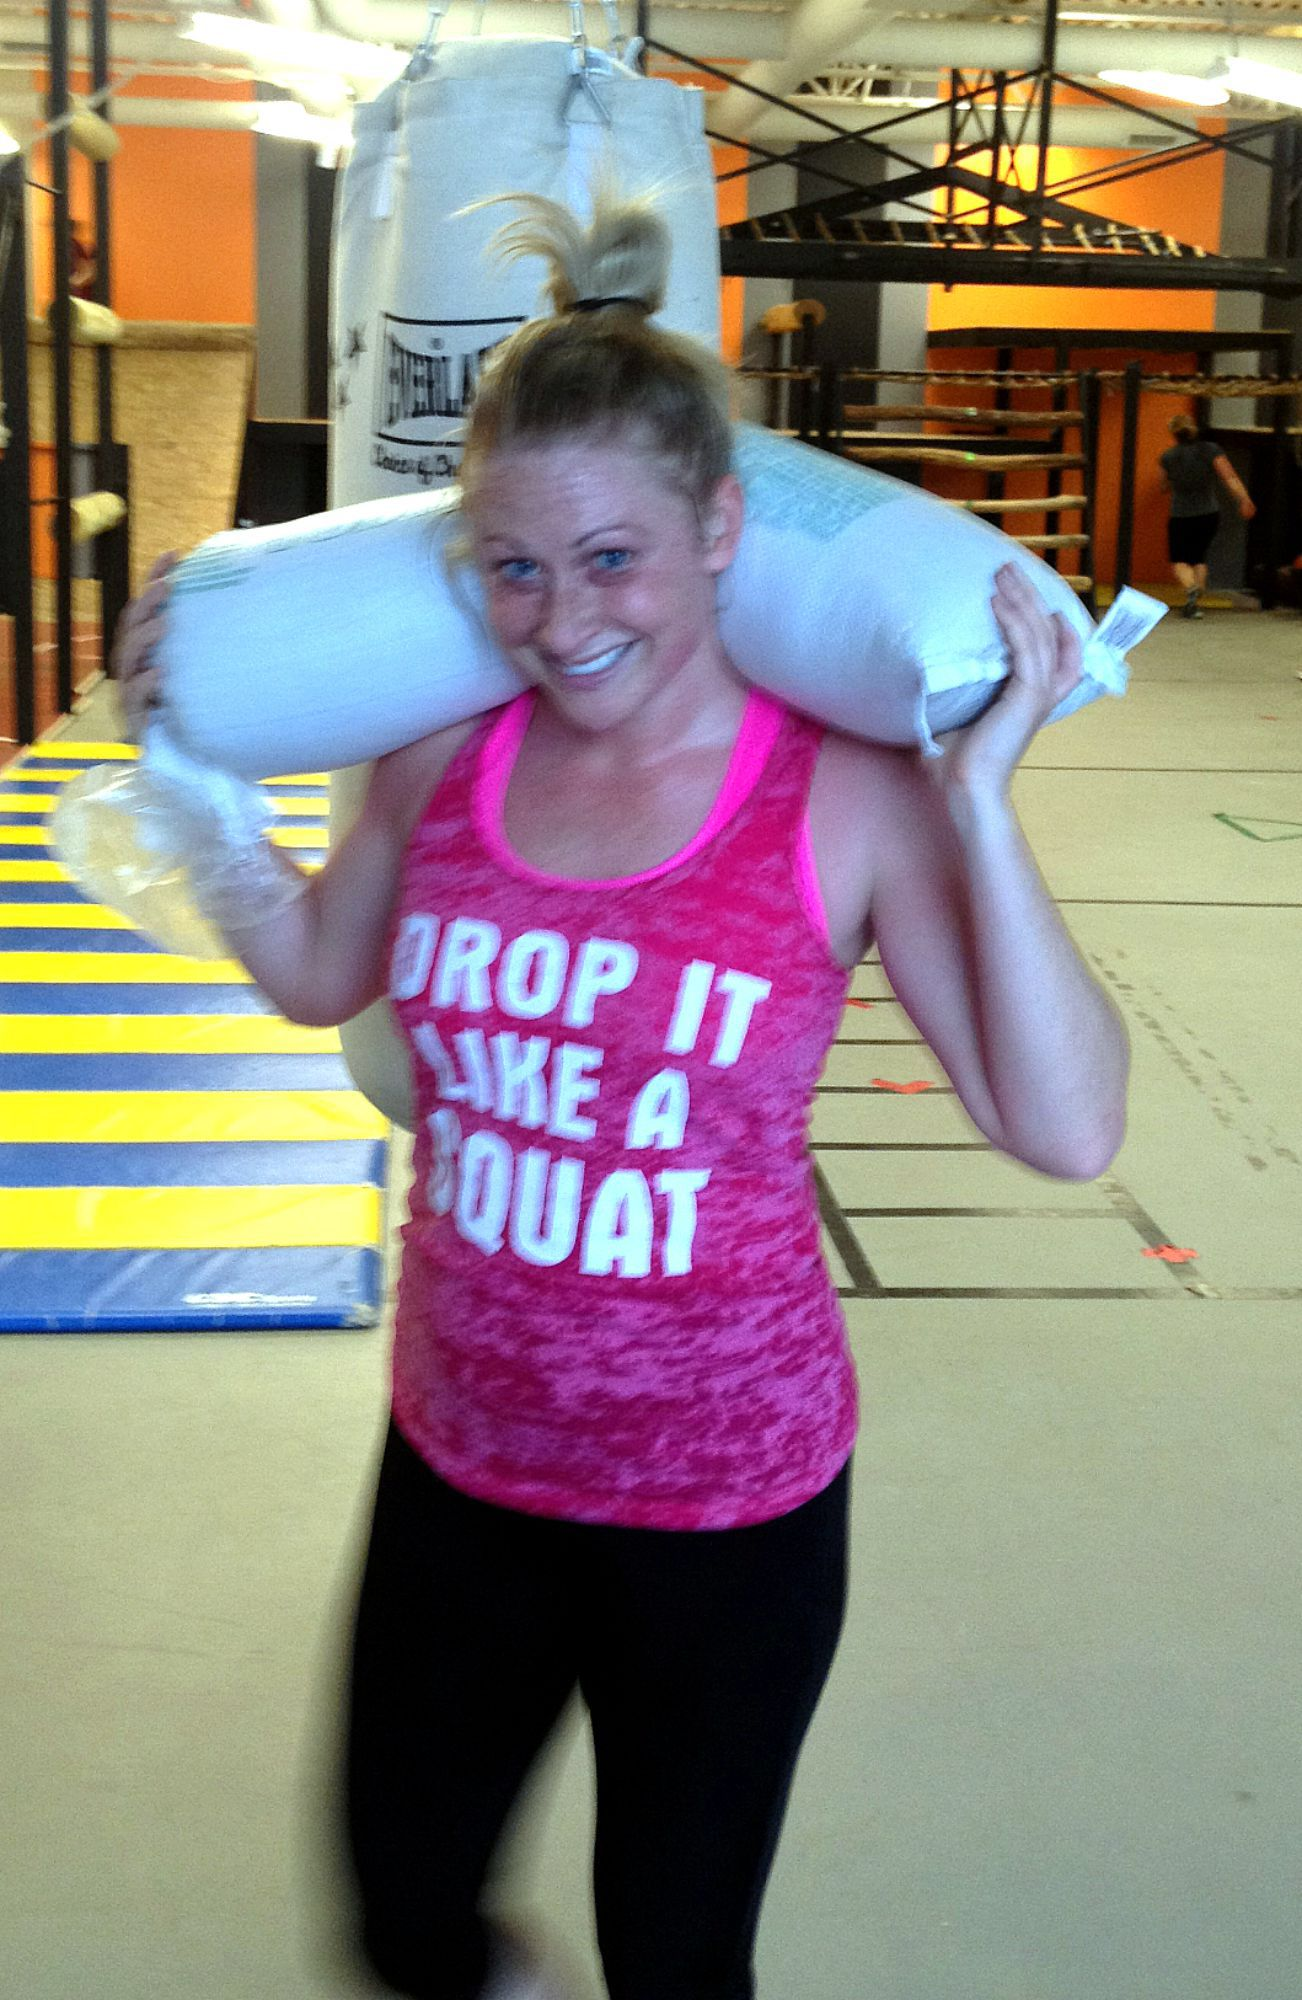 Downtown boot camp with images group fitness classes